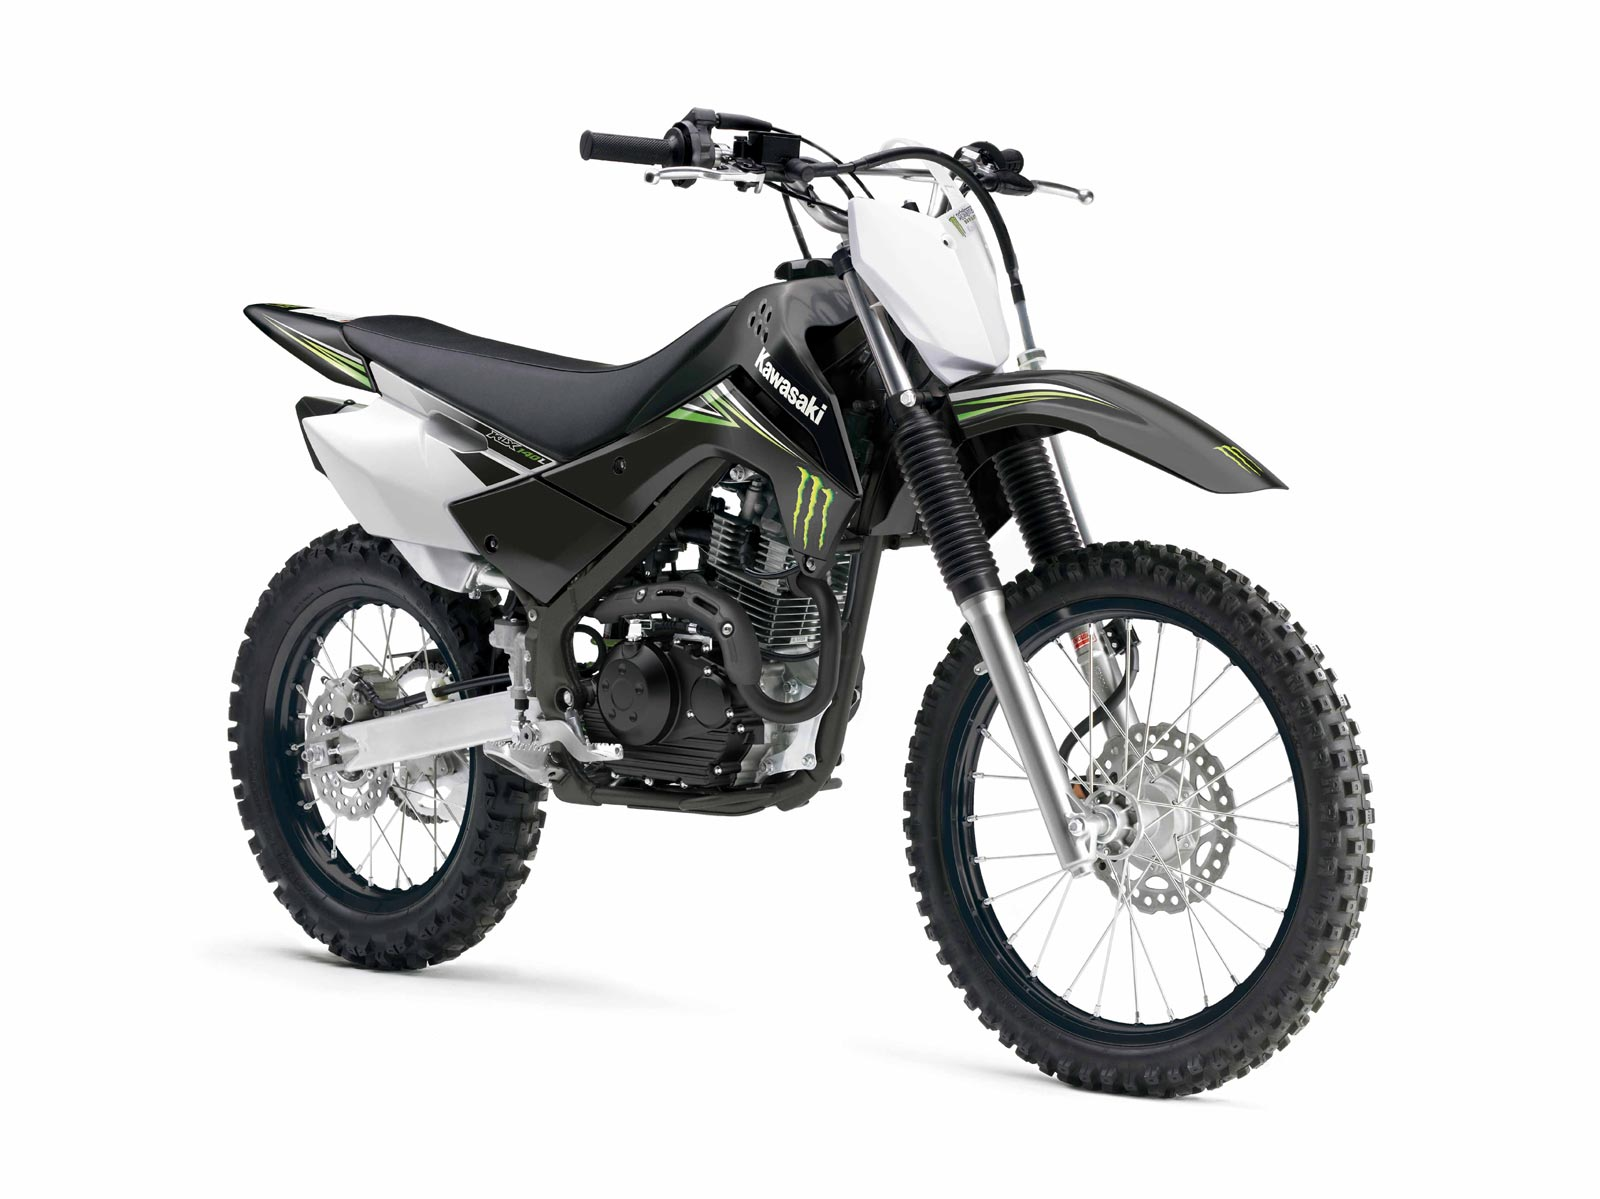 2009 Kawasaki Klx140 Monster Energy